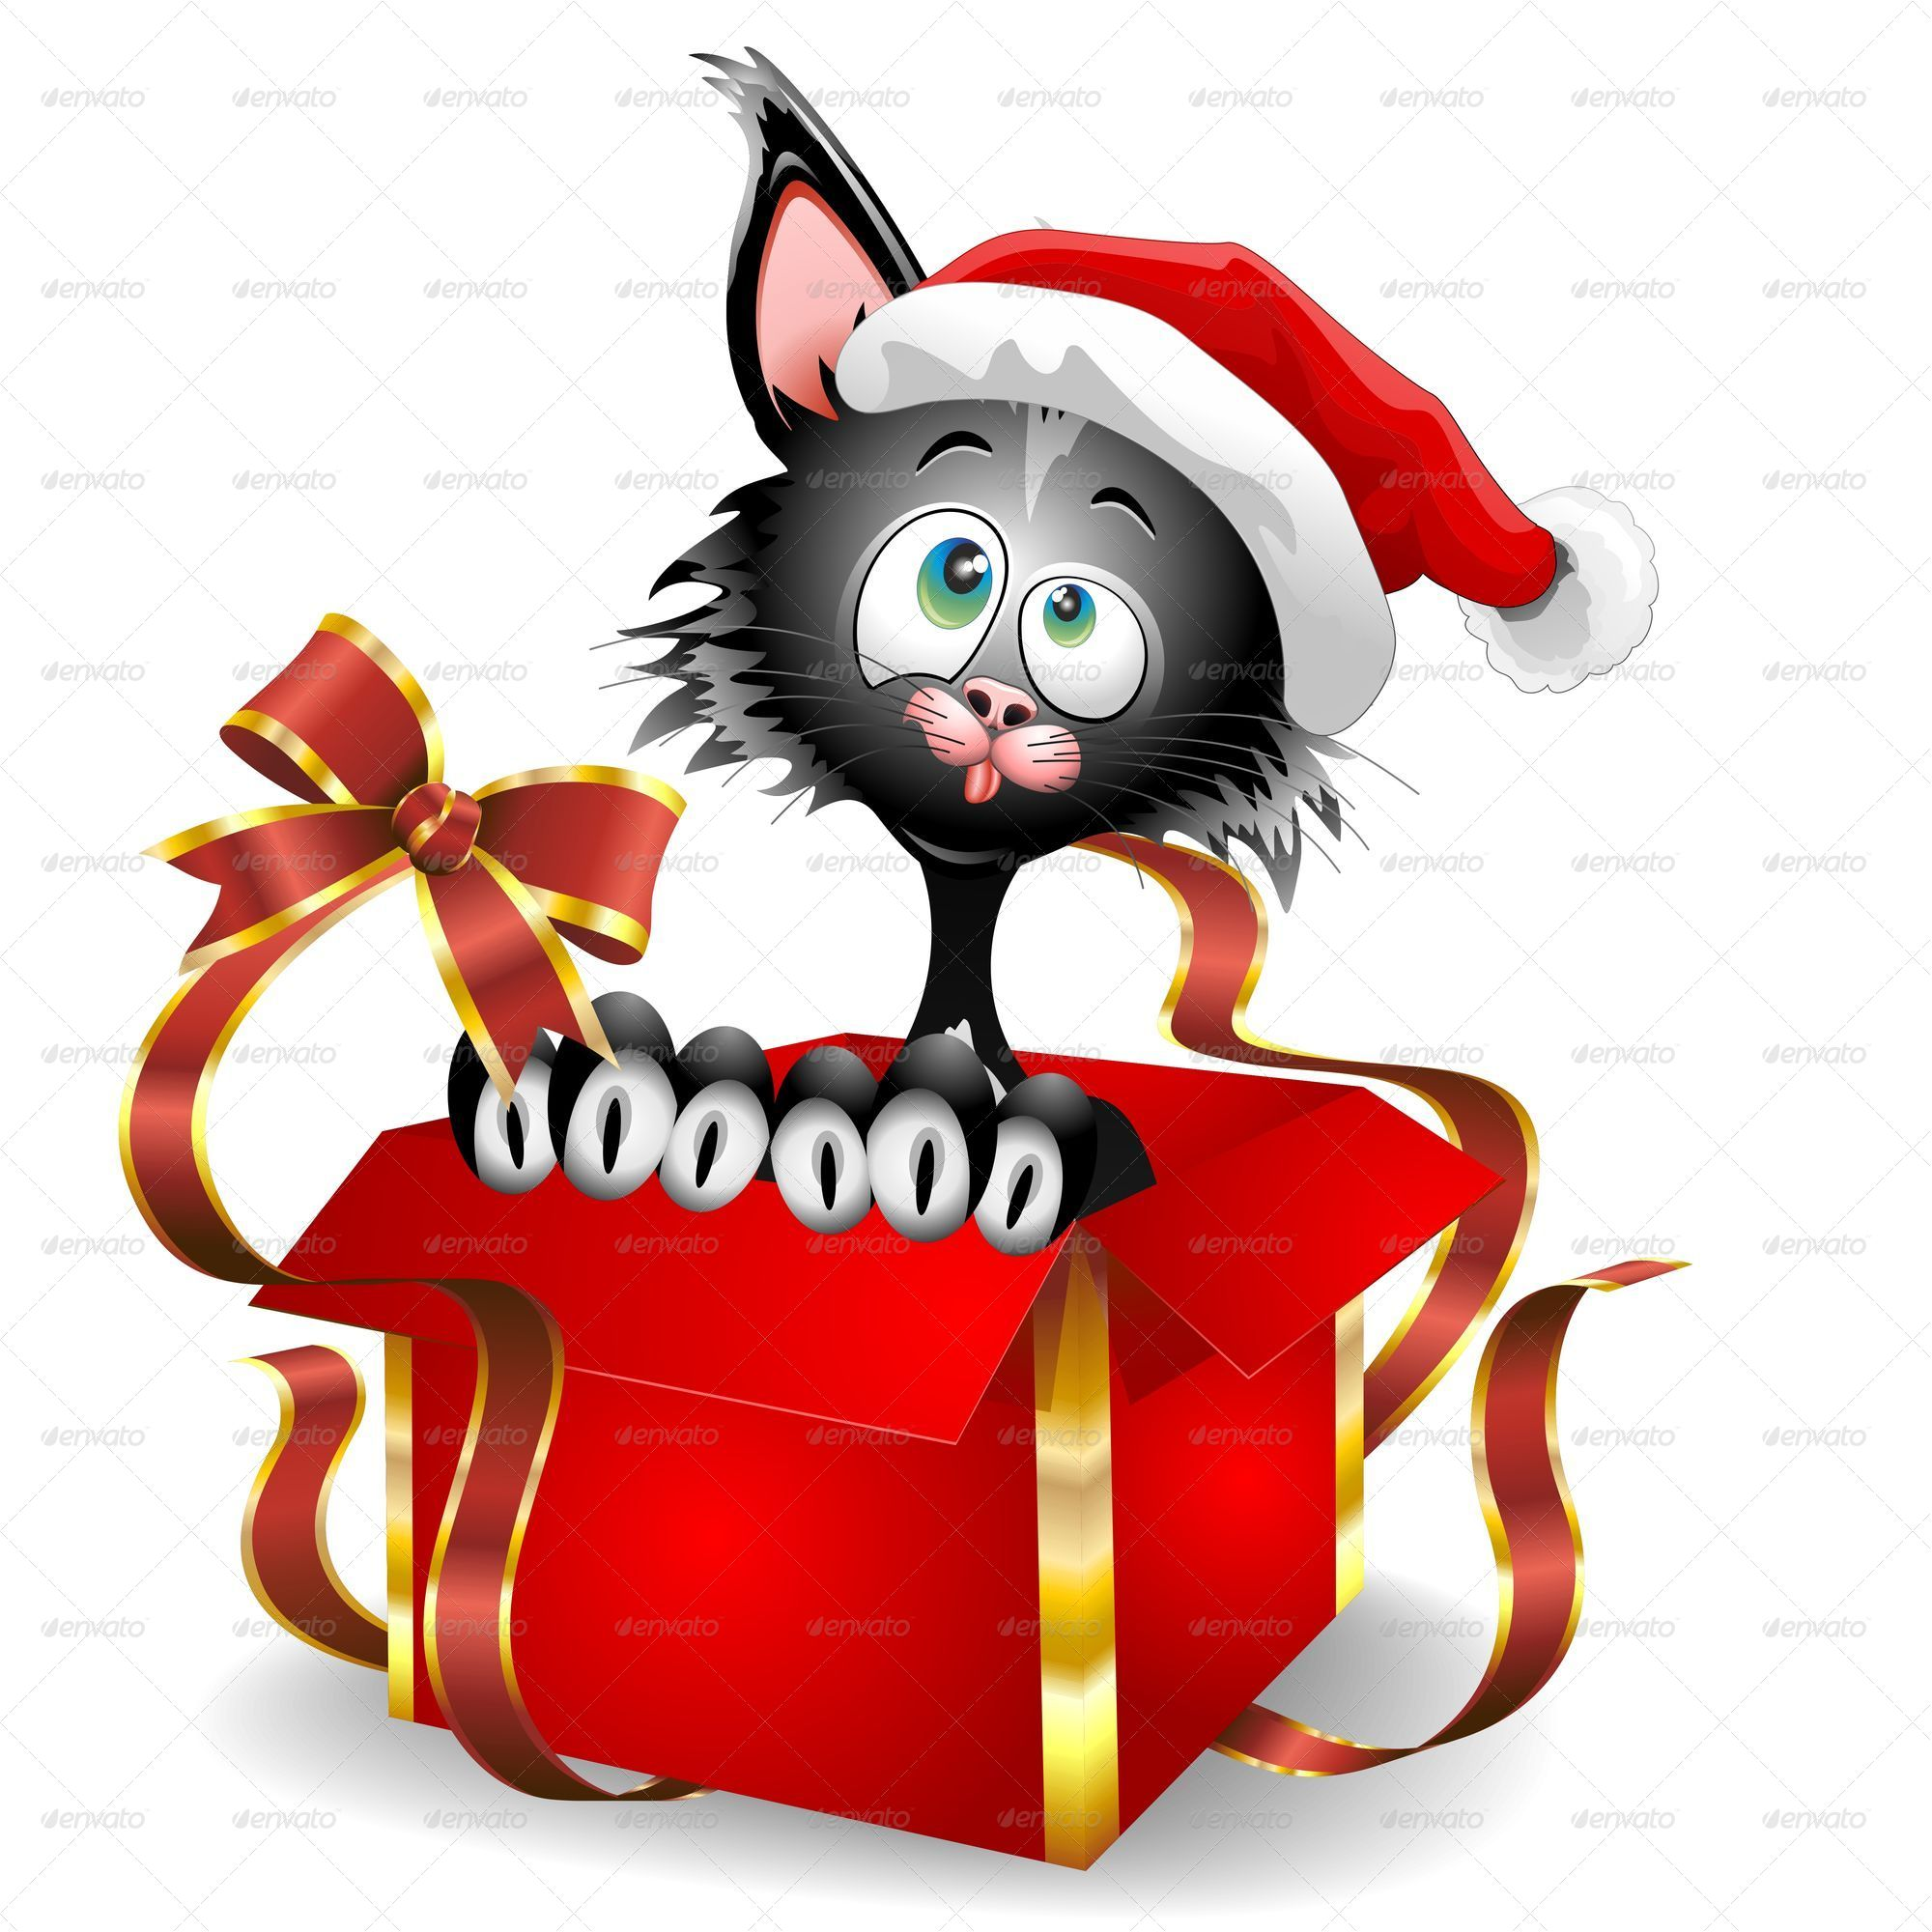 Cat cartoon on christmas gift by bluedarkat graphicriver